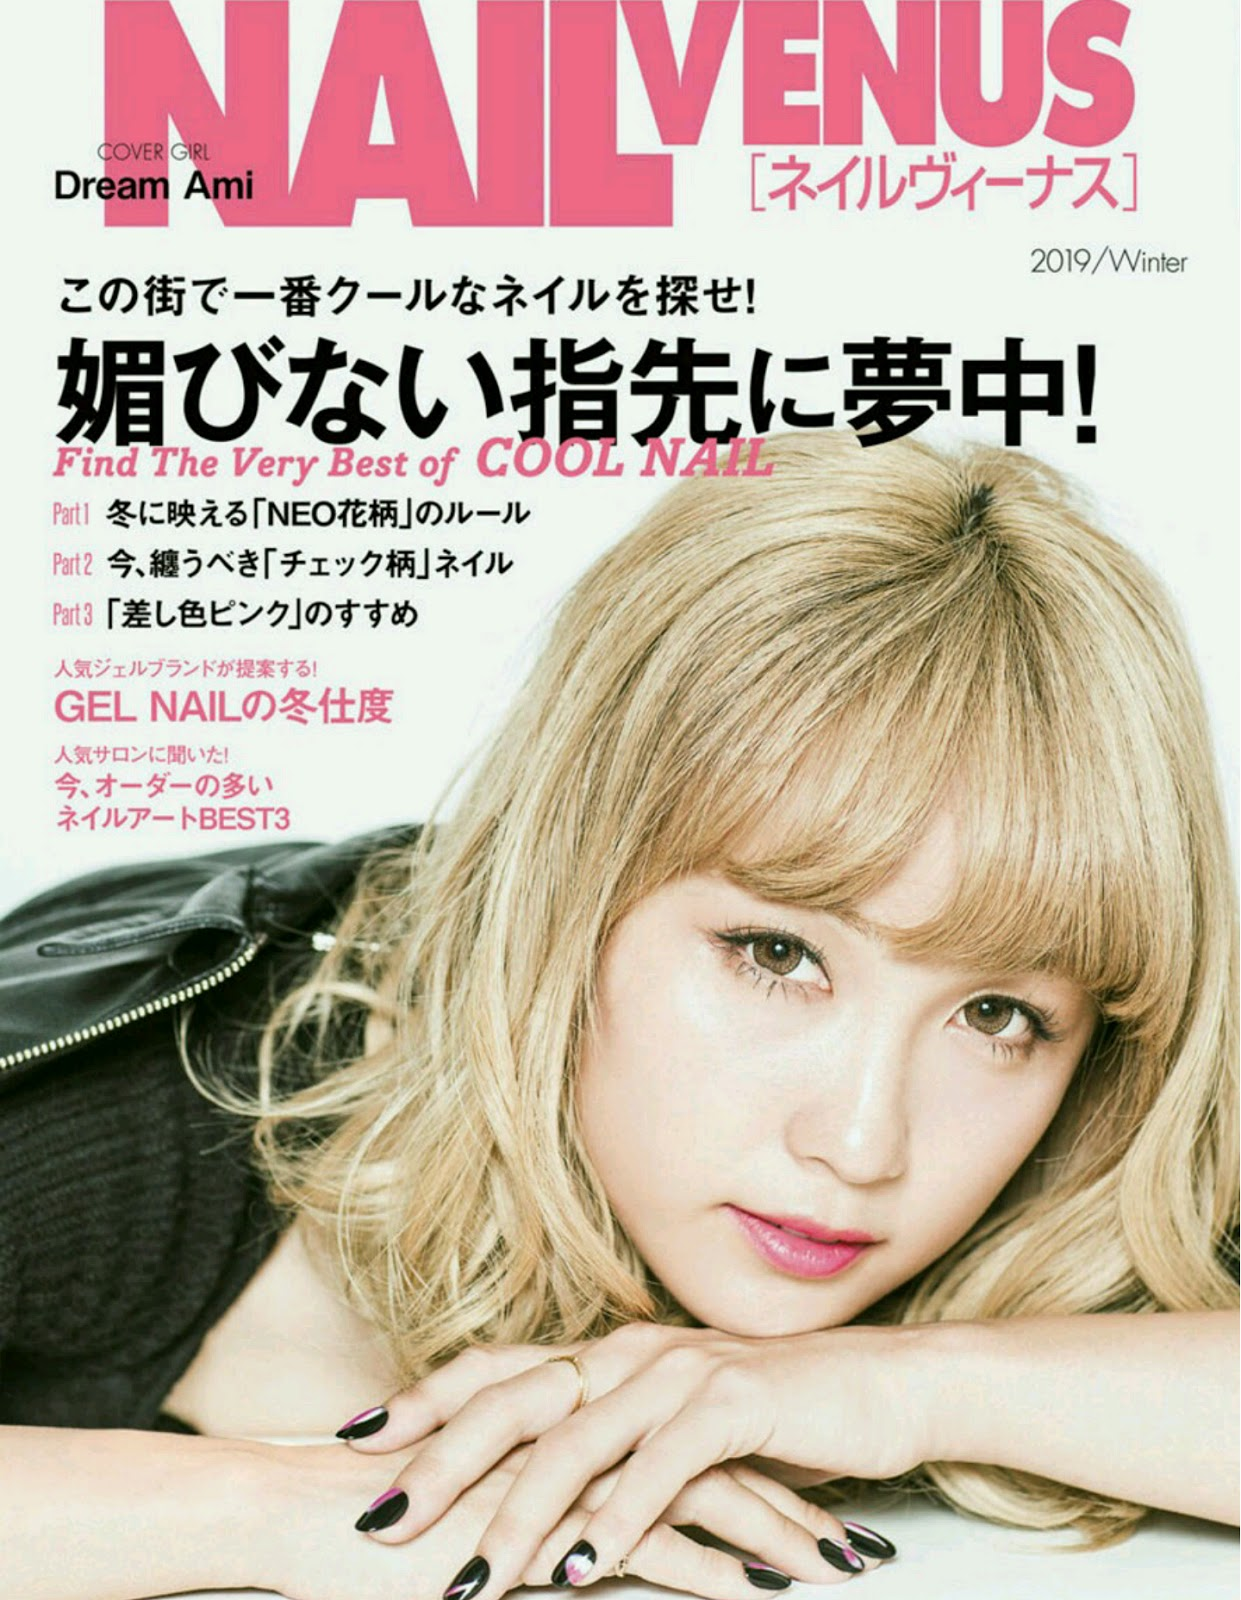 Nail Venus Winter 2018 Issue, Free Japanese Fashion Magazine Scans